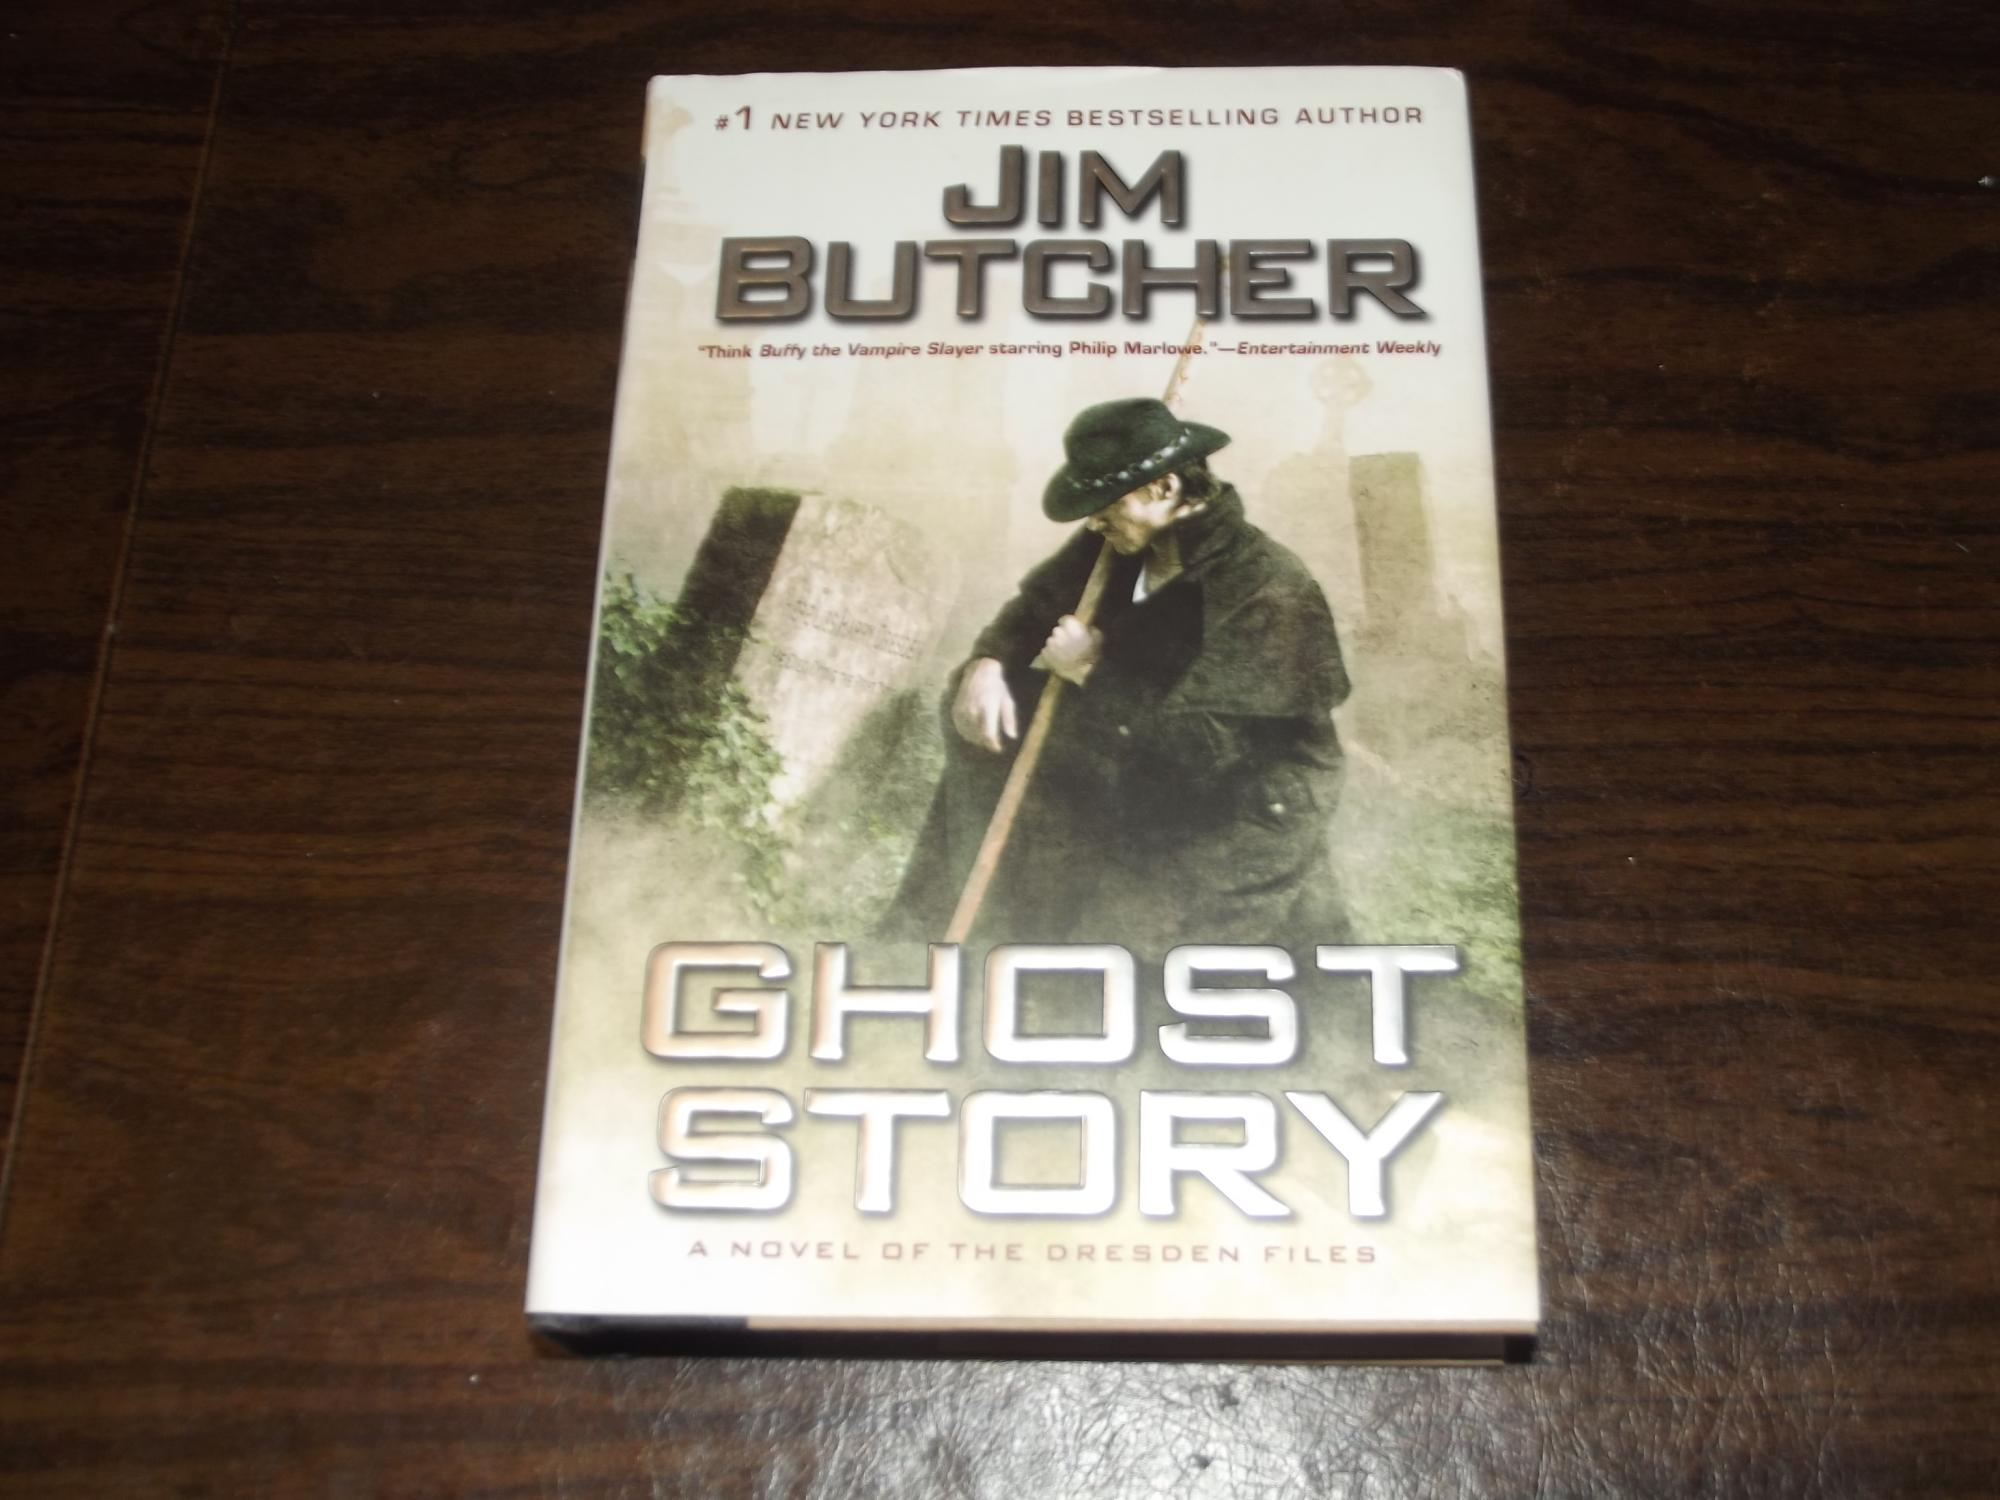 Ghost Story, A Novel Of The Dresden Files: Jim Butcher Bookseller Image